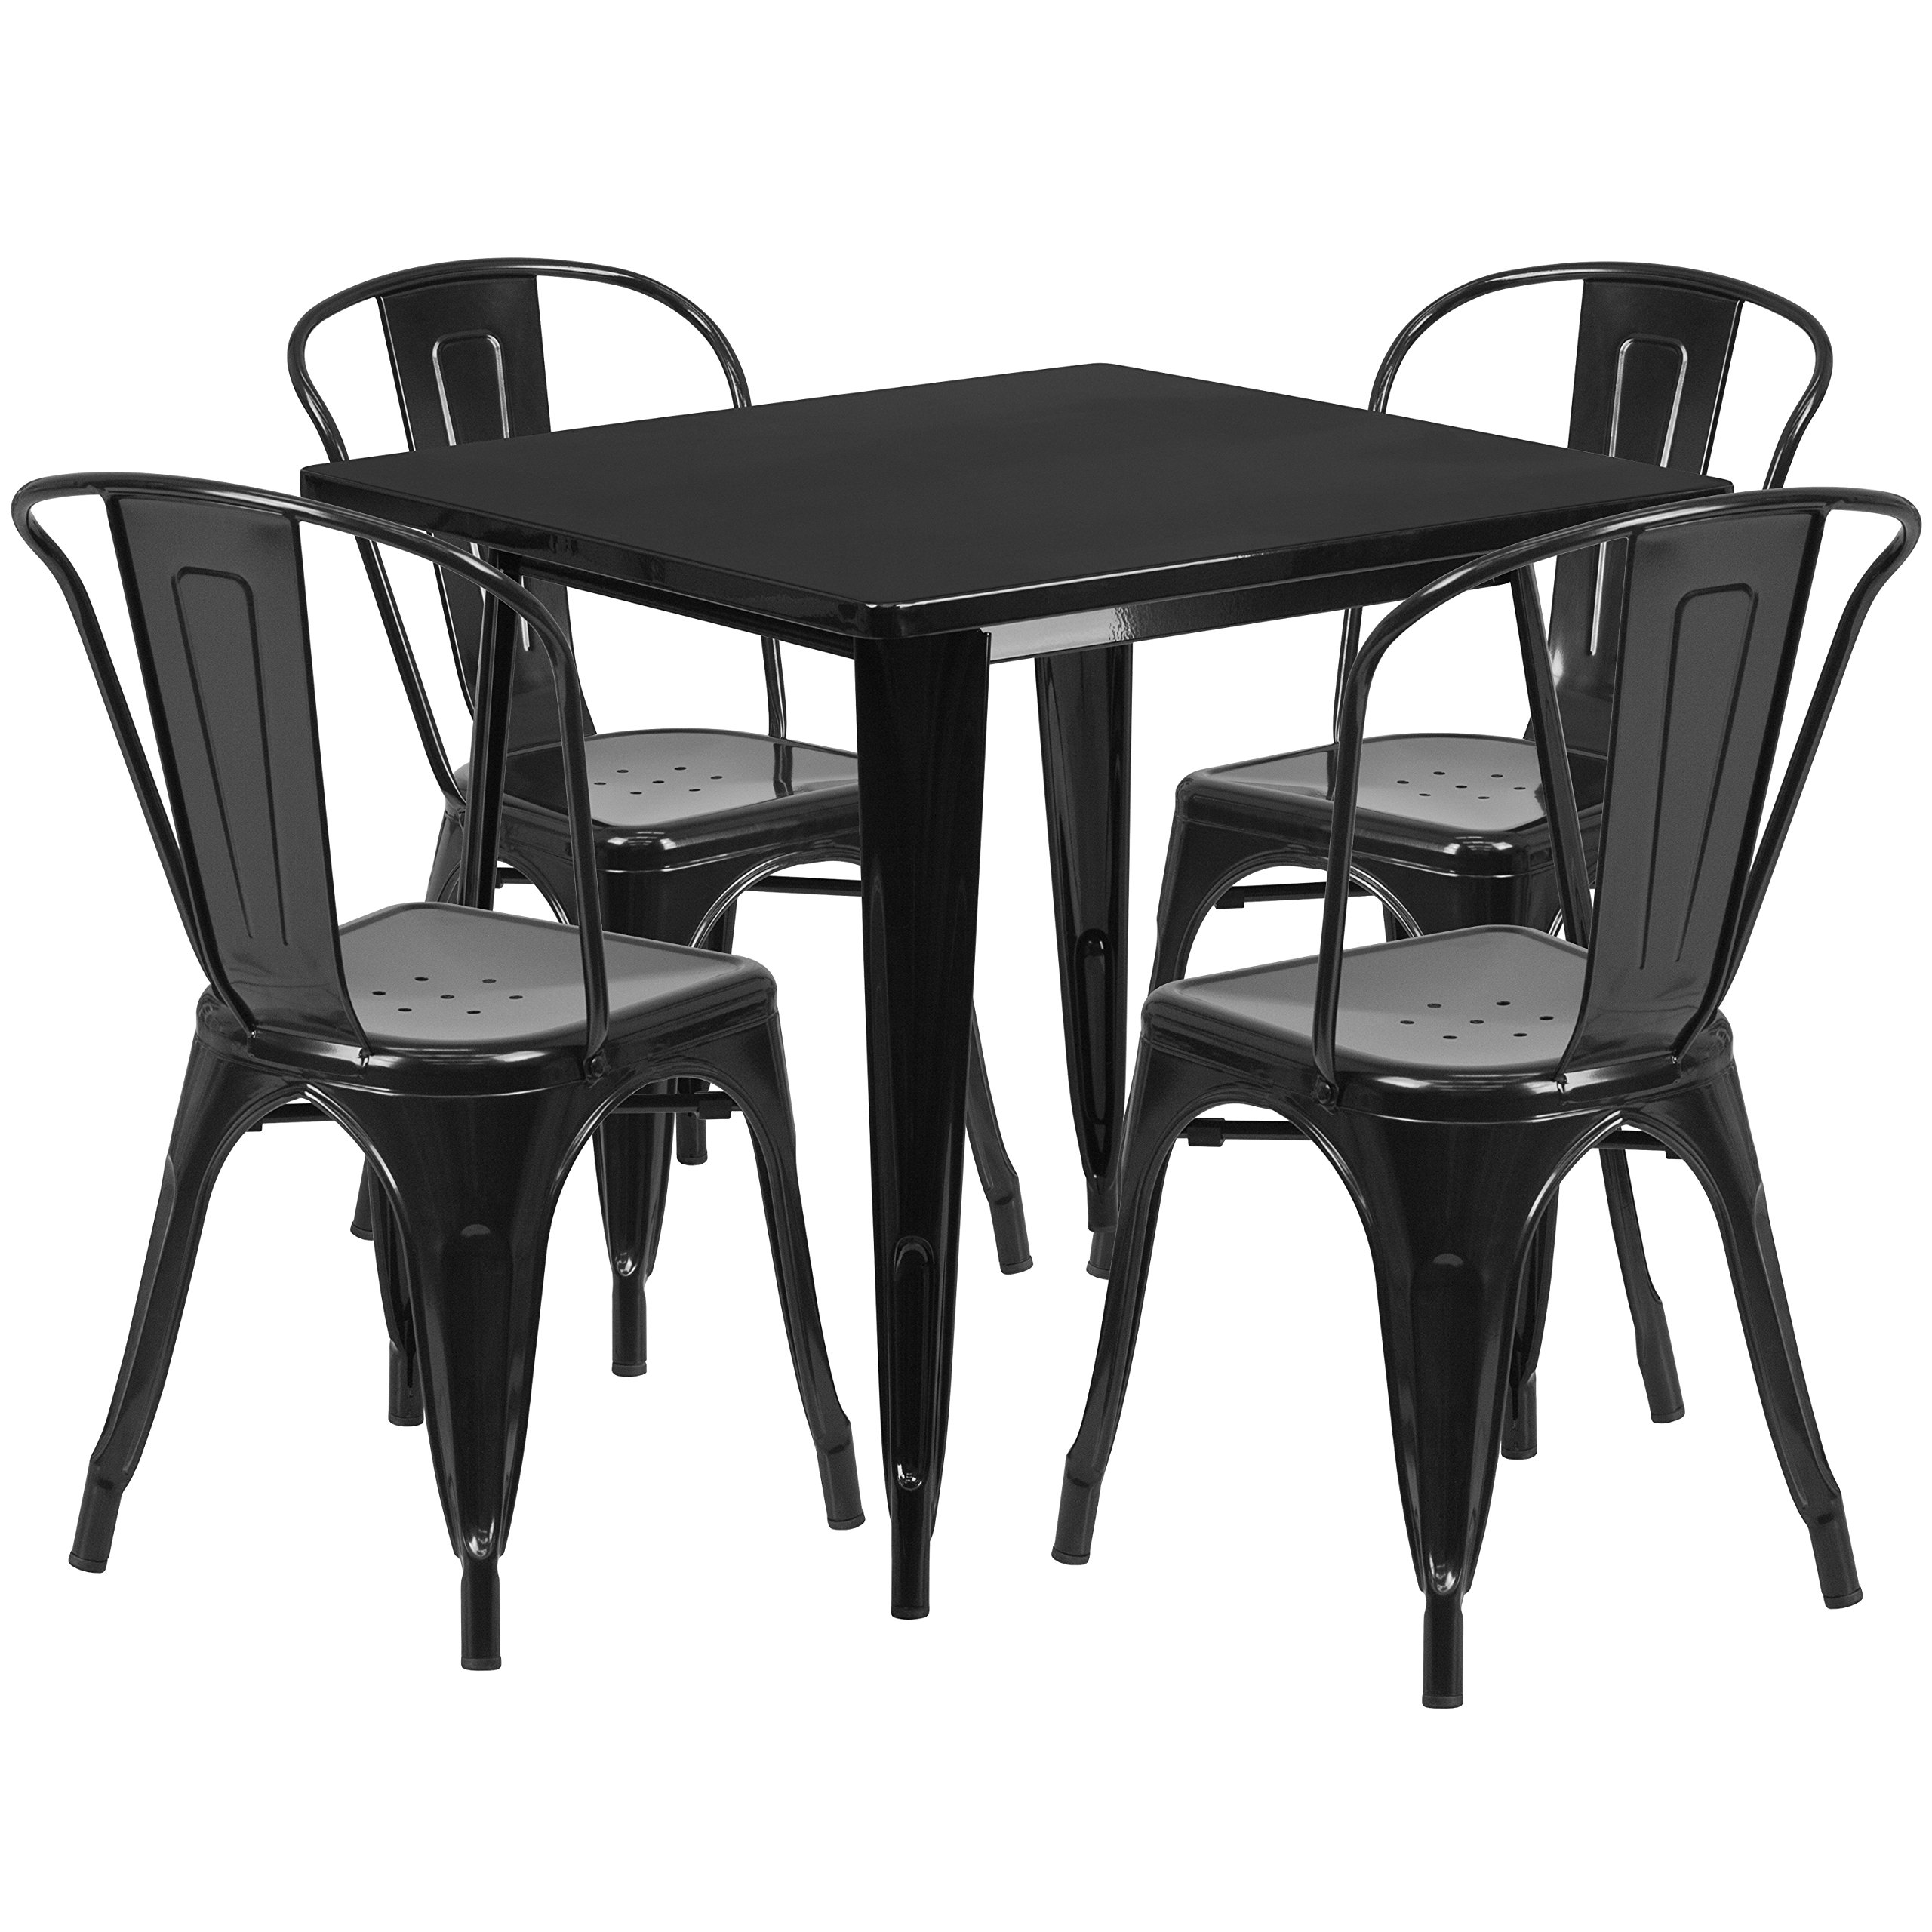 Flash Furniture 31.5'' Square Black Metal Indoor-Outdoor Table Set with 4 Stack Chairs by Flash Furniture (Image #1)